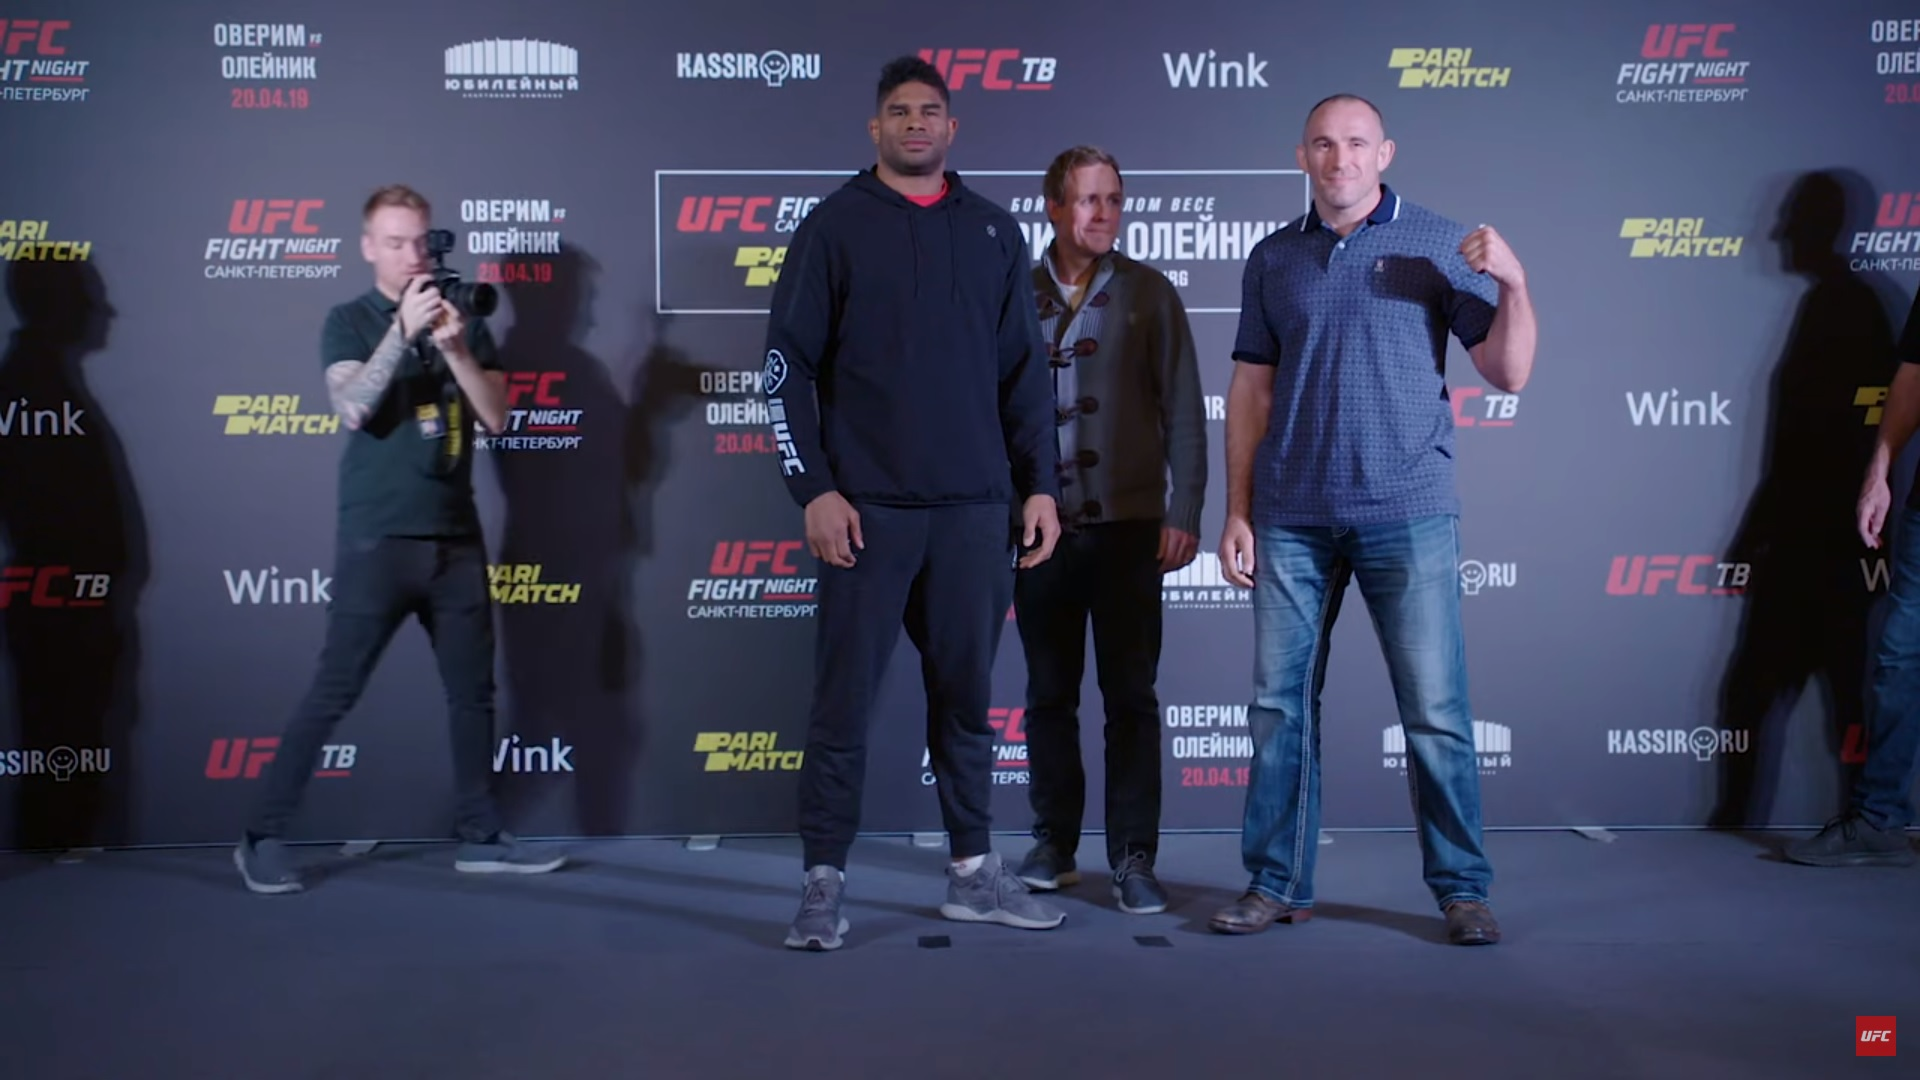 Overeem and Oleinik face off for the media